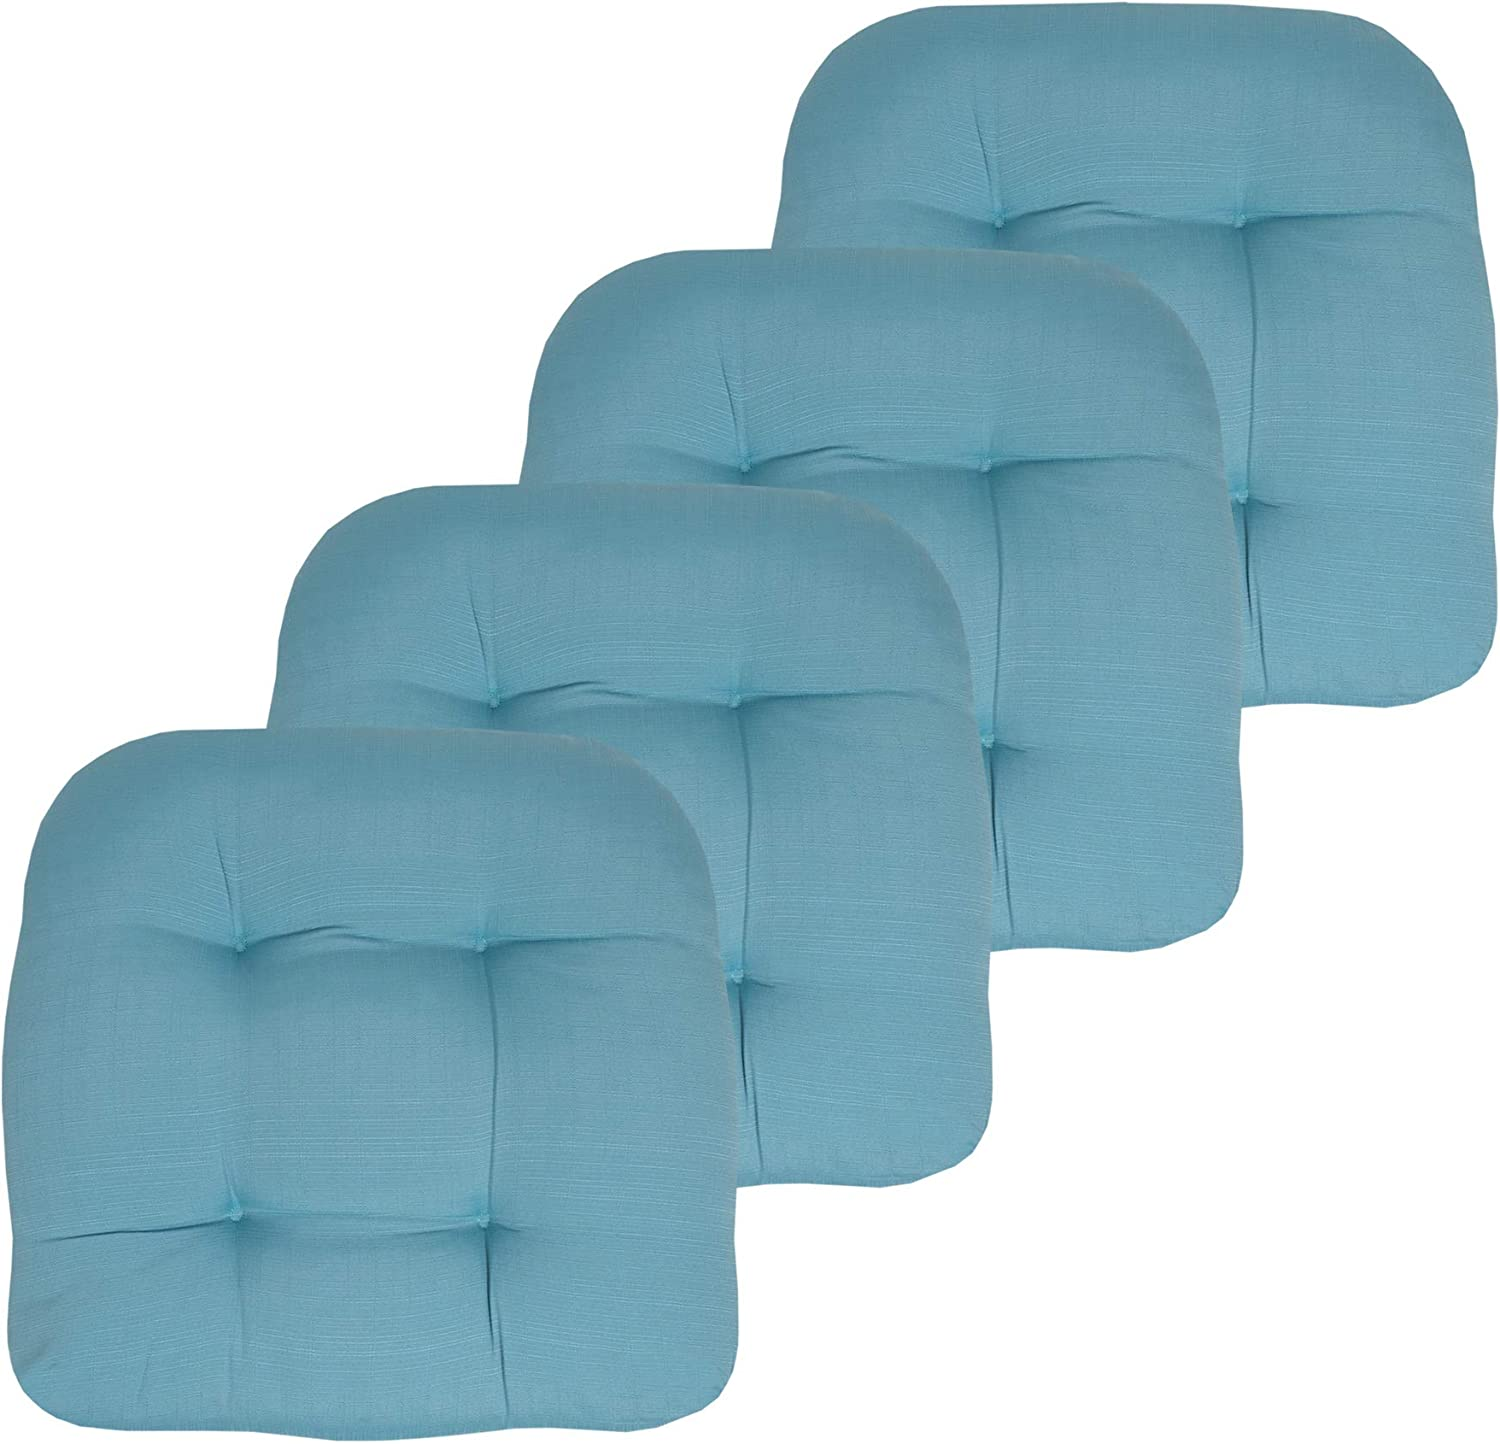 Sweet Home Collection Outdoor Chair Pads Patio seat Cover, 4 Pack, Teal